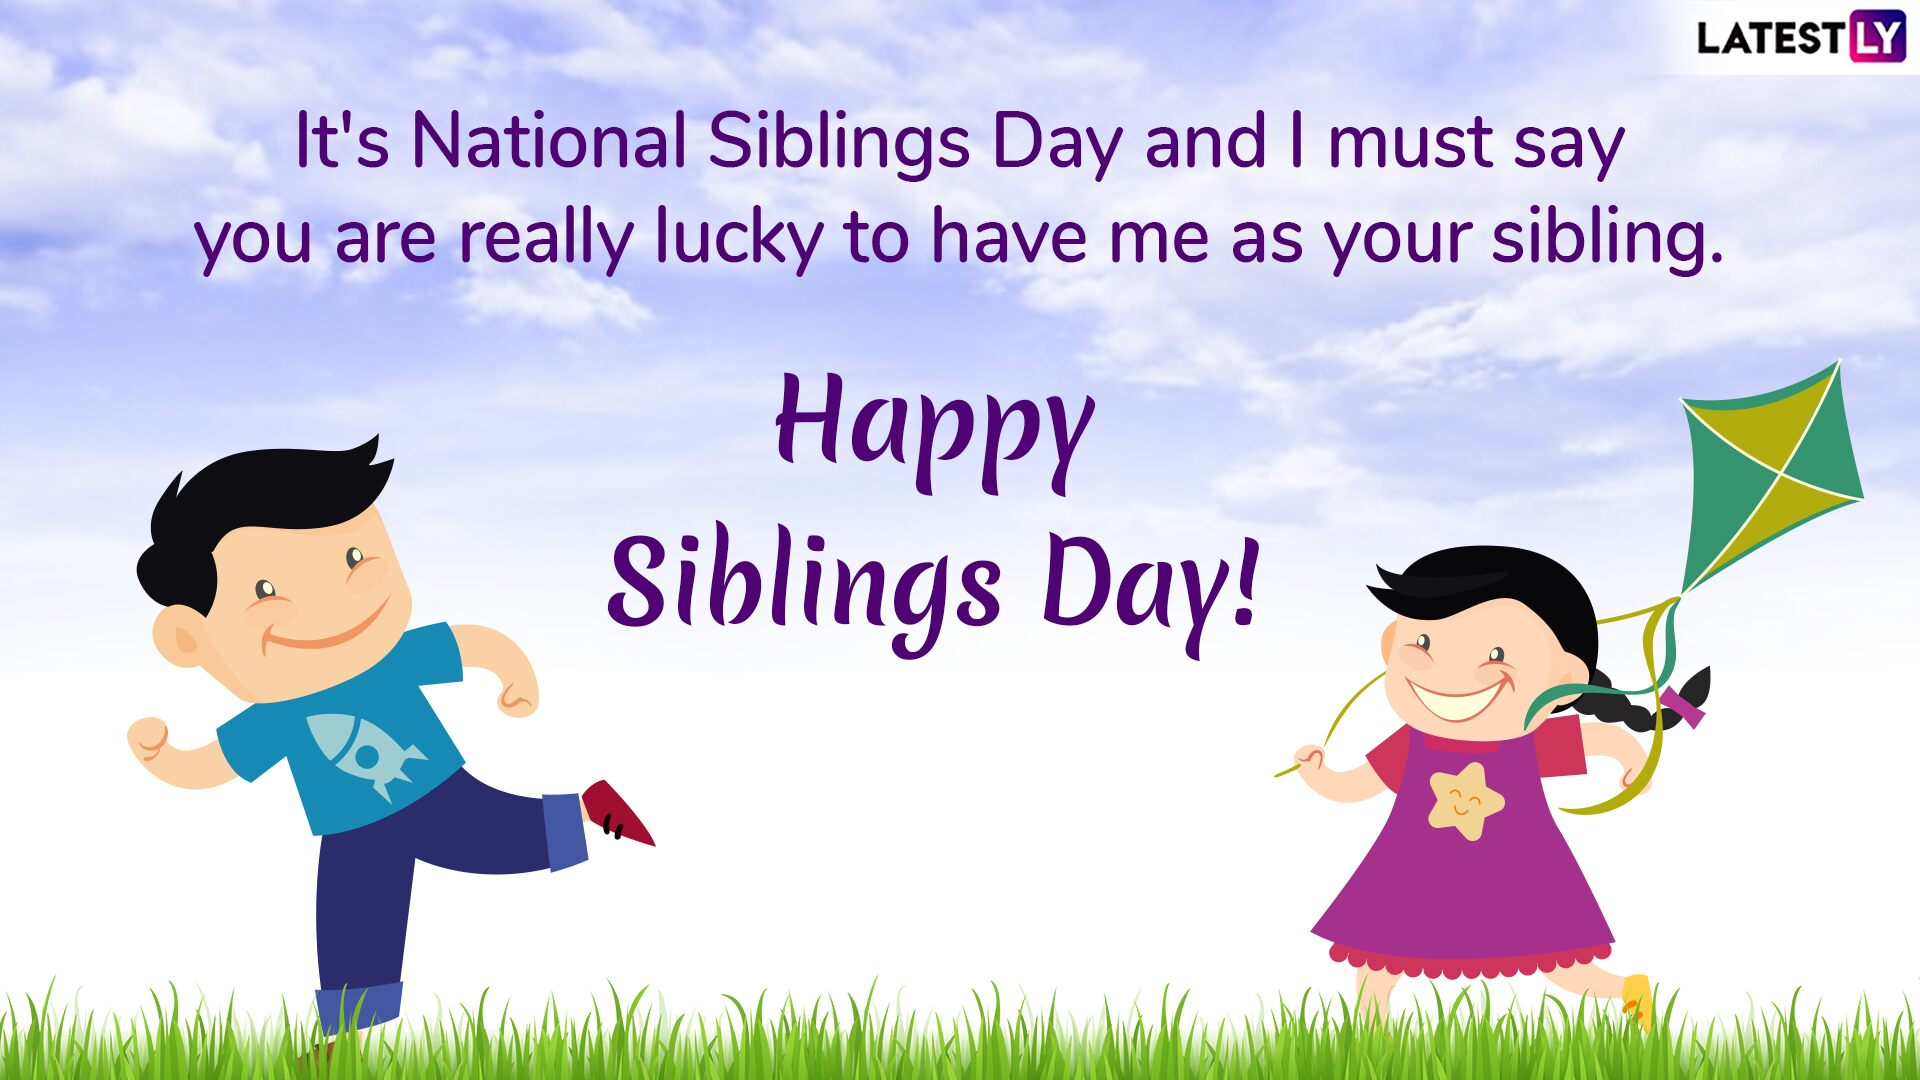 download National Siblings Day 2019 Funny Quotes GIF Images 1920x1080